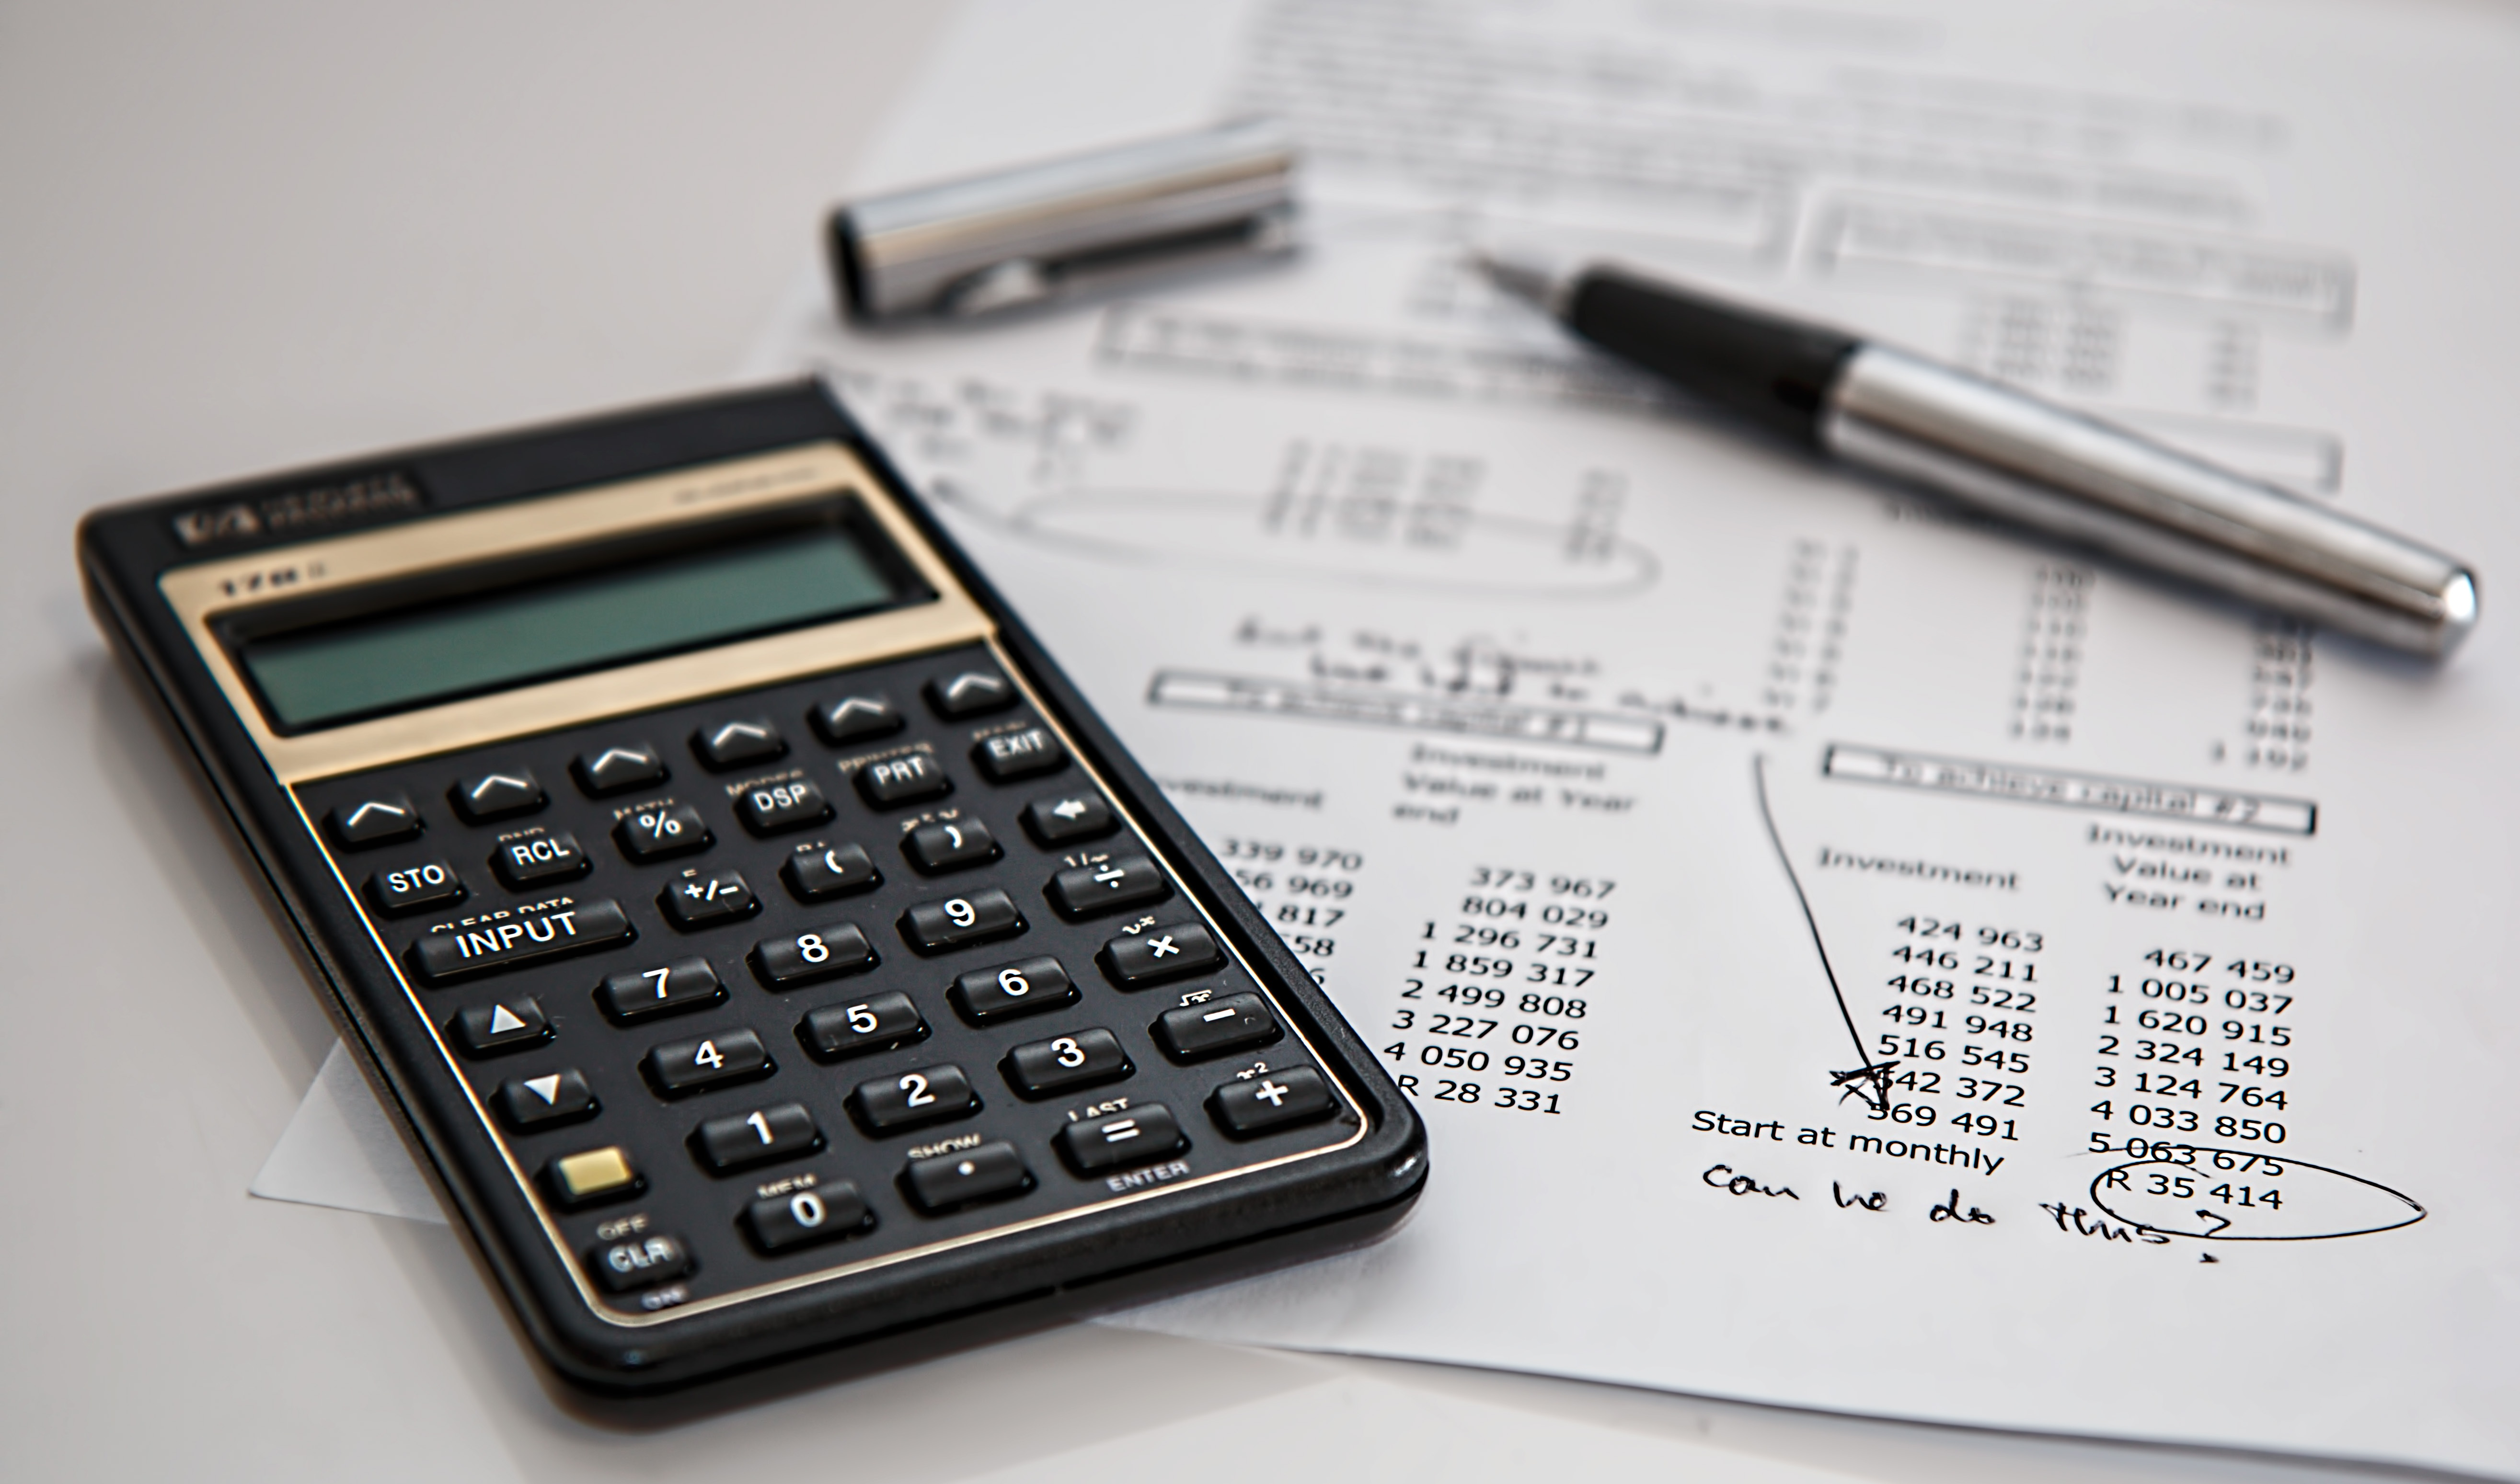 cost-effective maintenance - image of accounting items on a desk including calculator, pen, and paper financial report